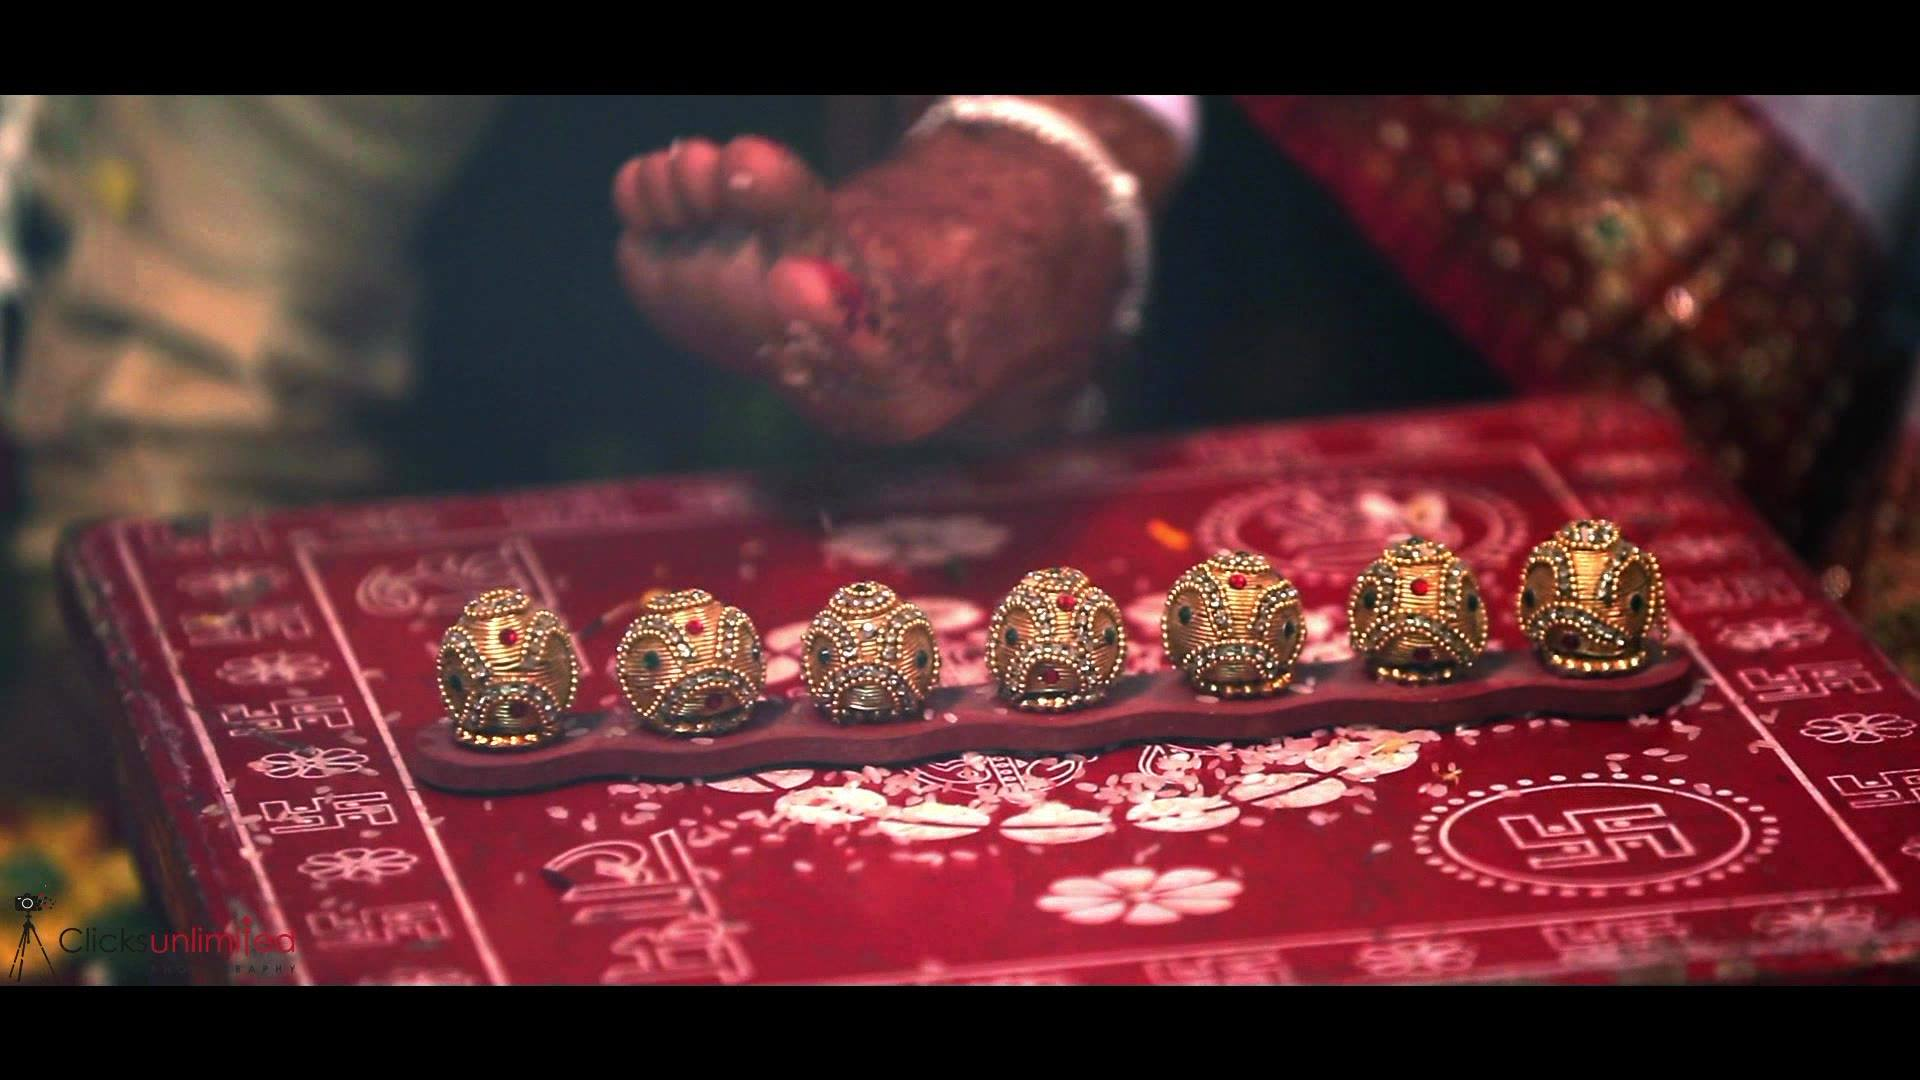 Arranged marriages are filled with old school romance, mushy and cute! <3